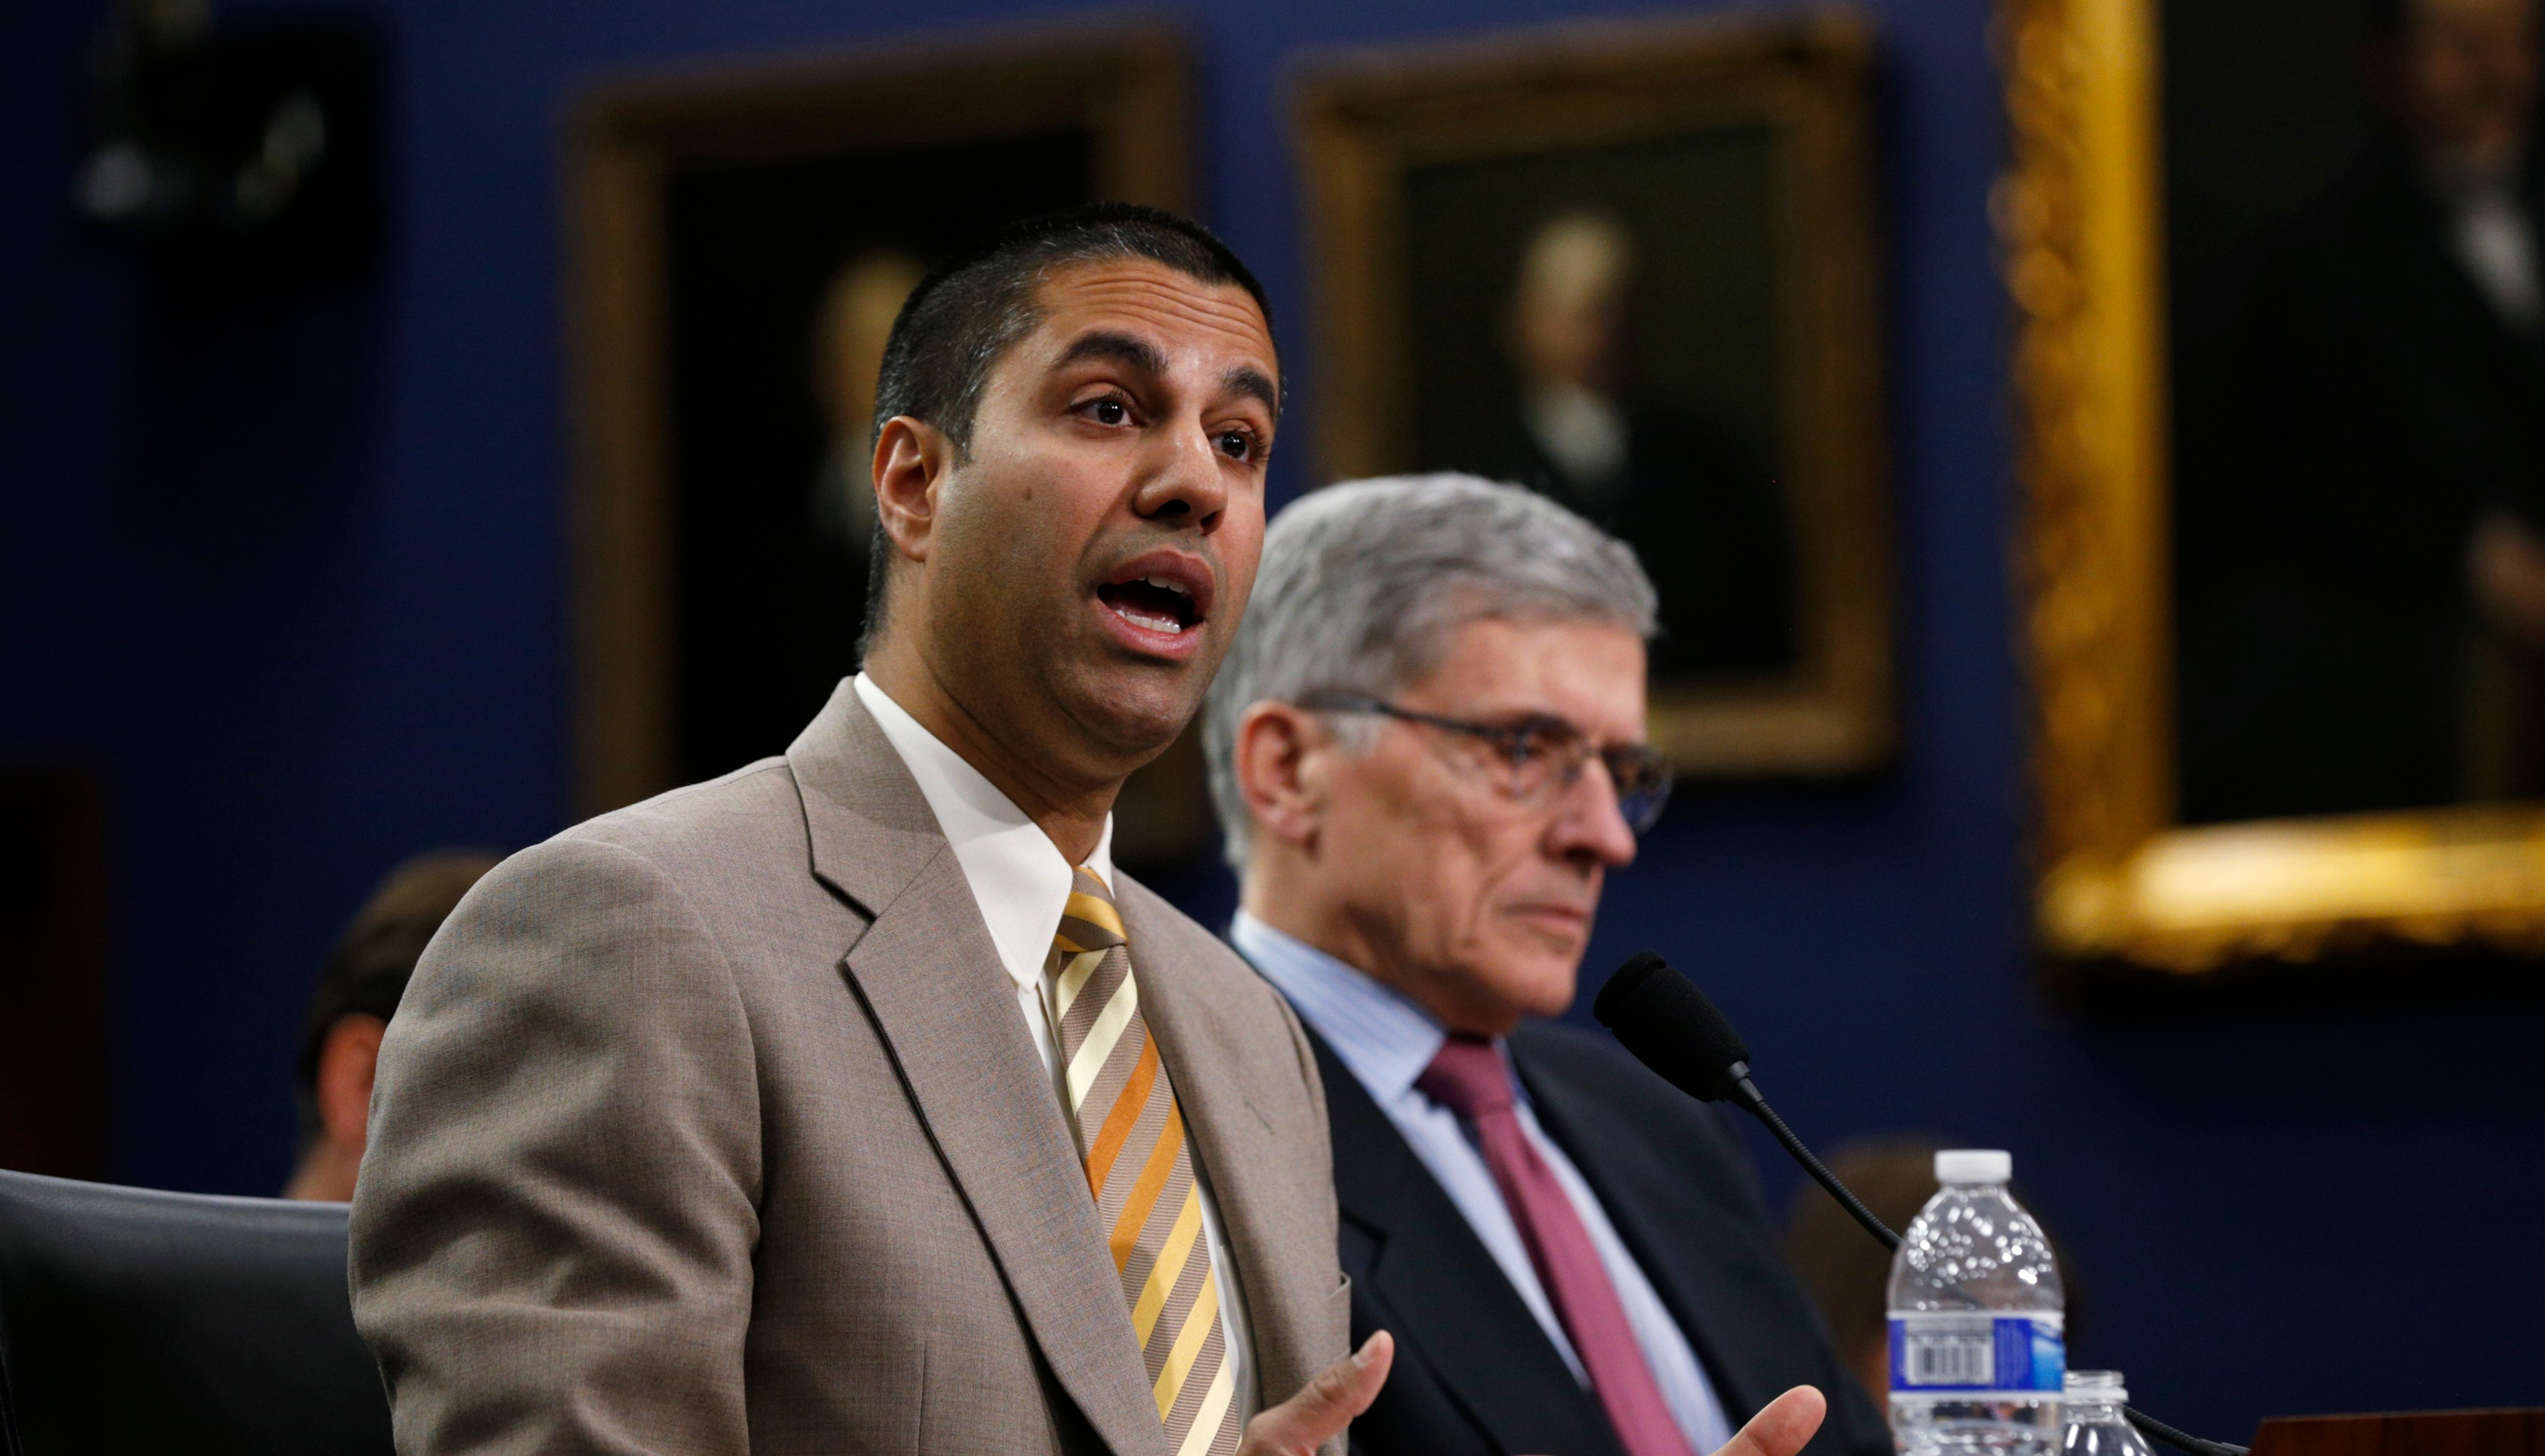 Federal Communications Commission (FCC) Commissioner Ajit Pai (L) and FCC Chairman Tom Wheeler testify at a House Appropriations Financial Services and General Government Subcommittee hearing on the FCC's FY2016 budget, on Capitol Hill